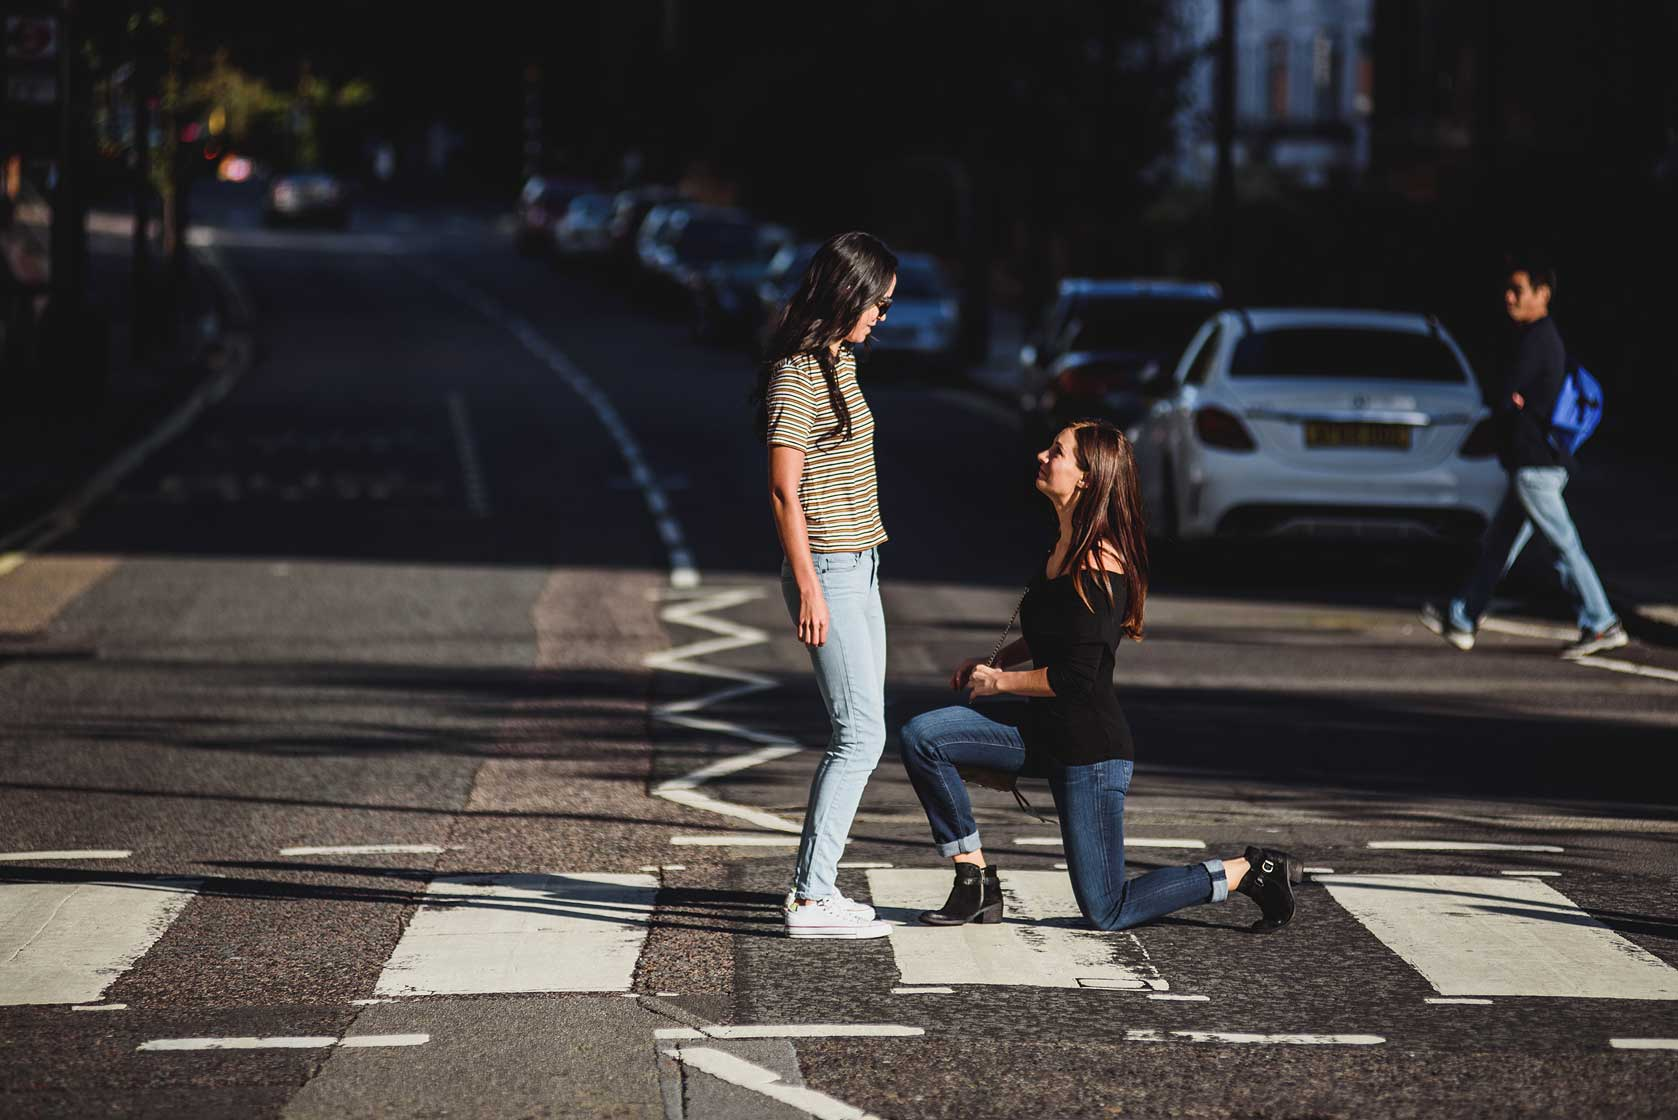 Reportage Proposal Photography on Abbey Road Crossing